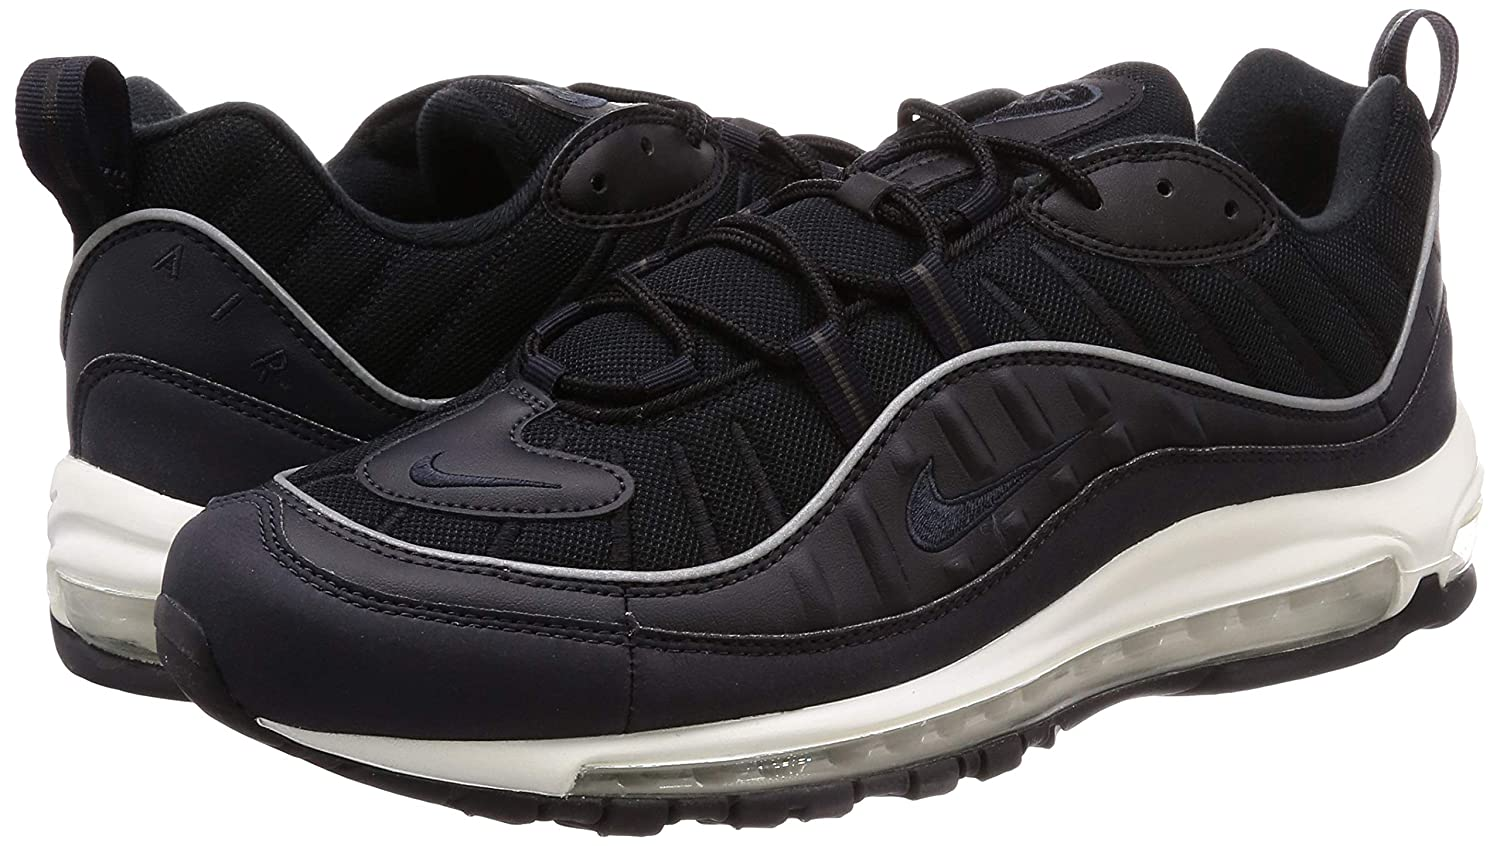 Nike Air Max 98 Oil gris negro Boys,zapatillas deportivas